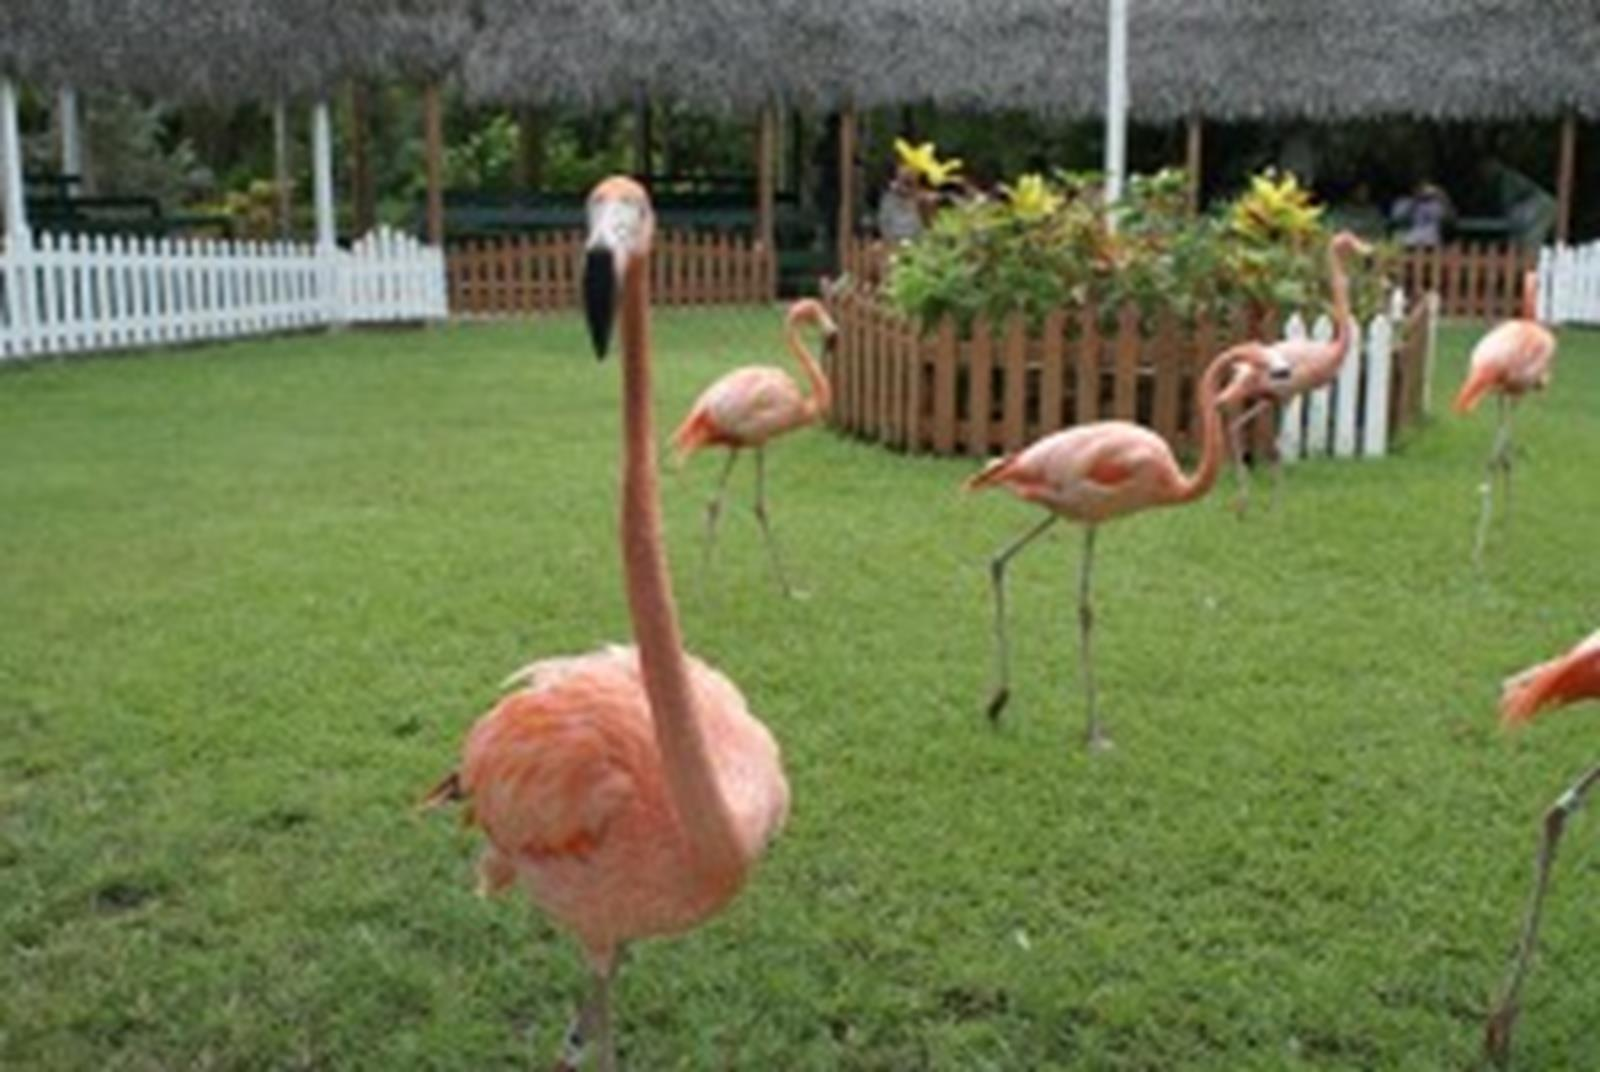 Get up close and personal with flamingos at the Ardastra Gardens, Zoo and Conservation Center